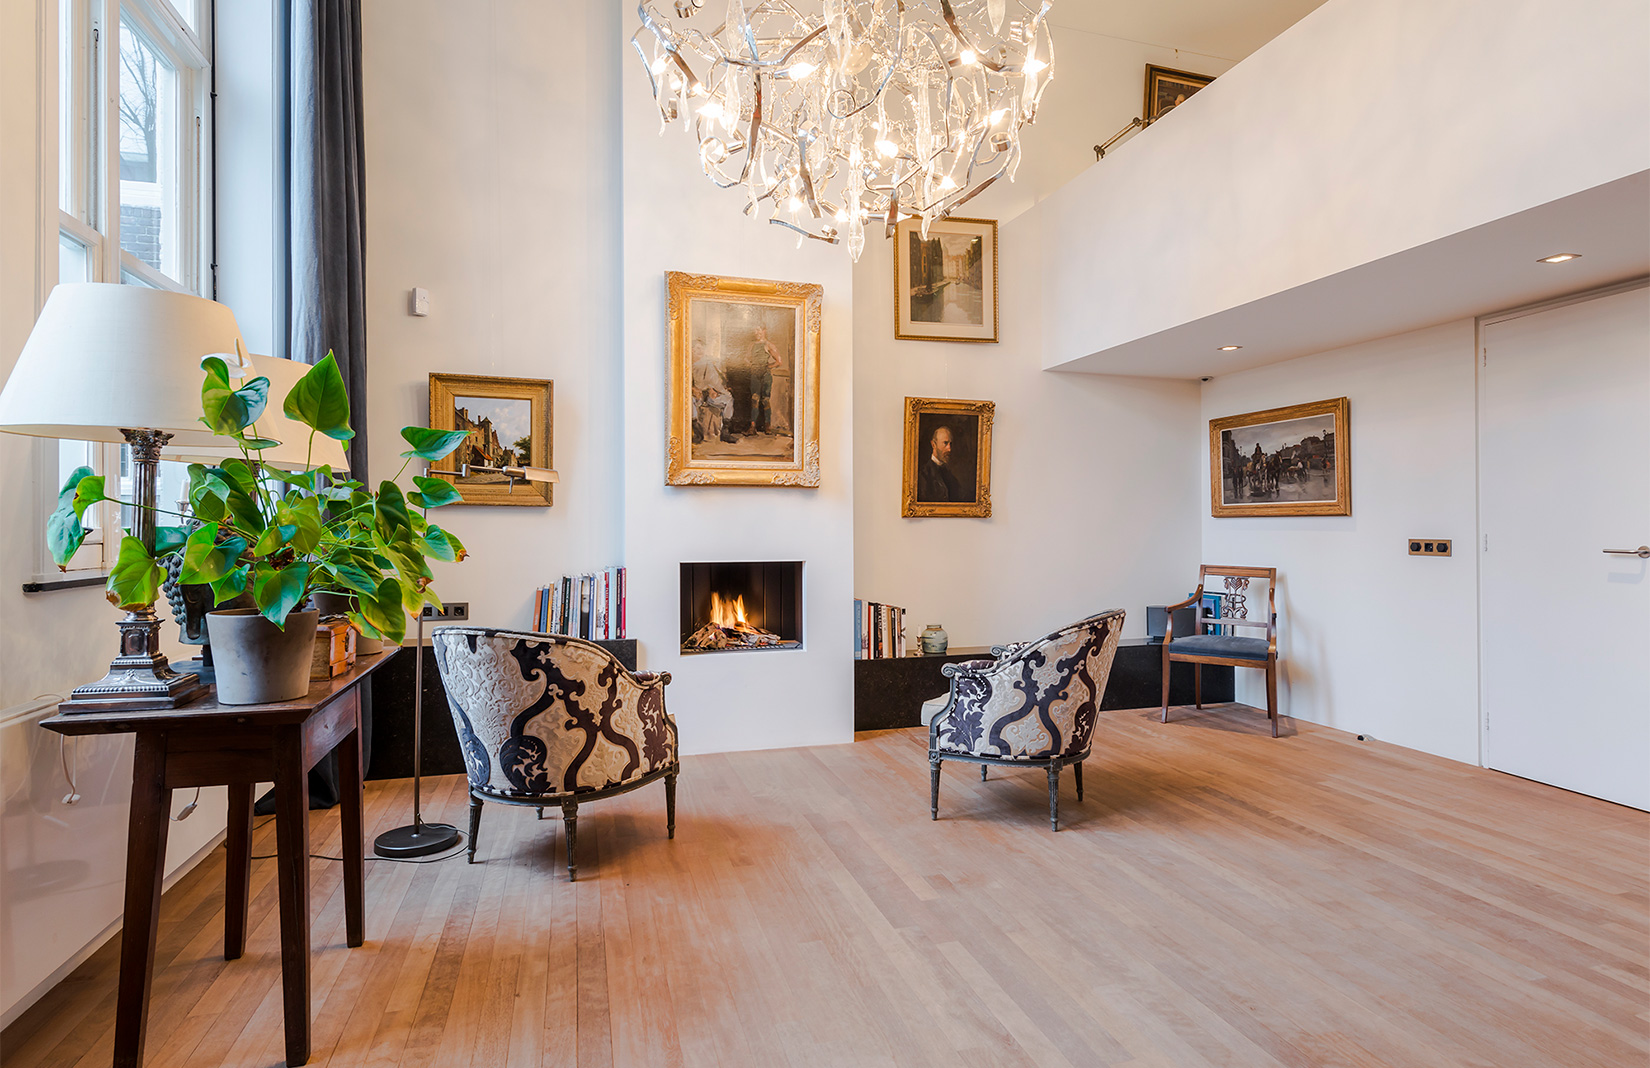 Property of the week: converted schoolhouse in Amsterdam